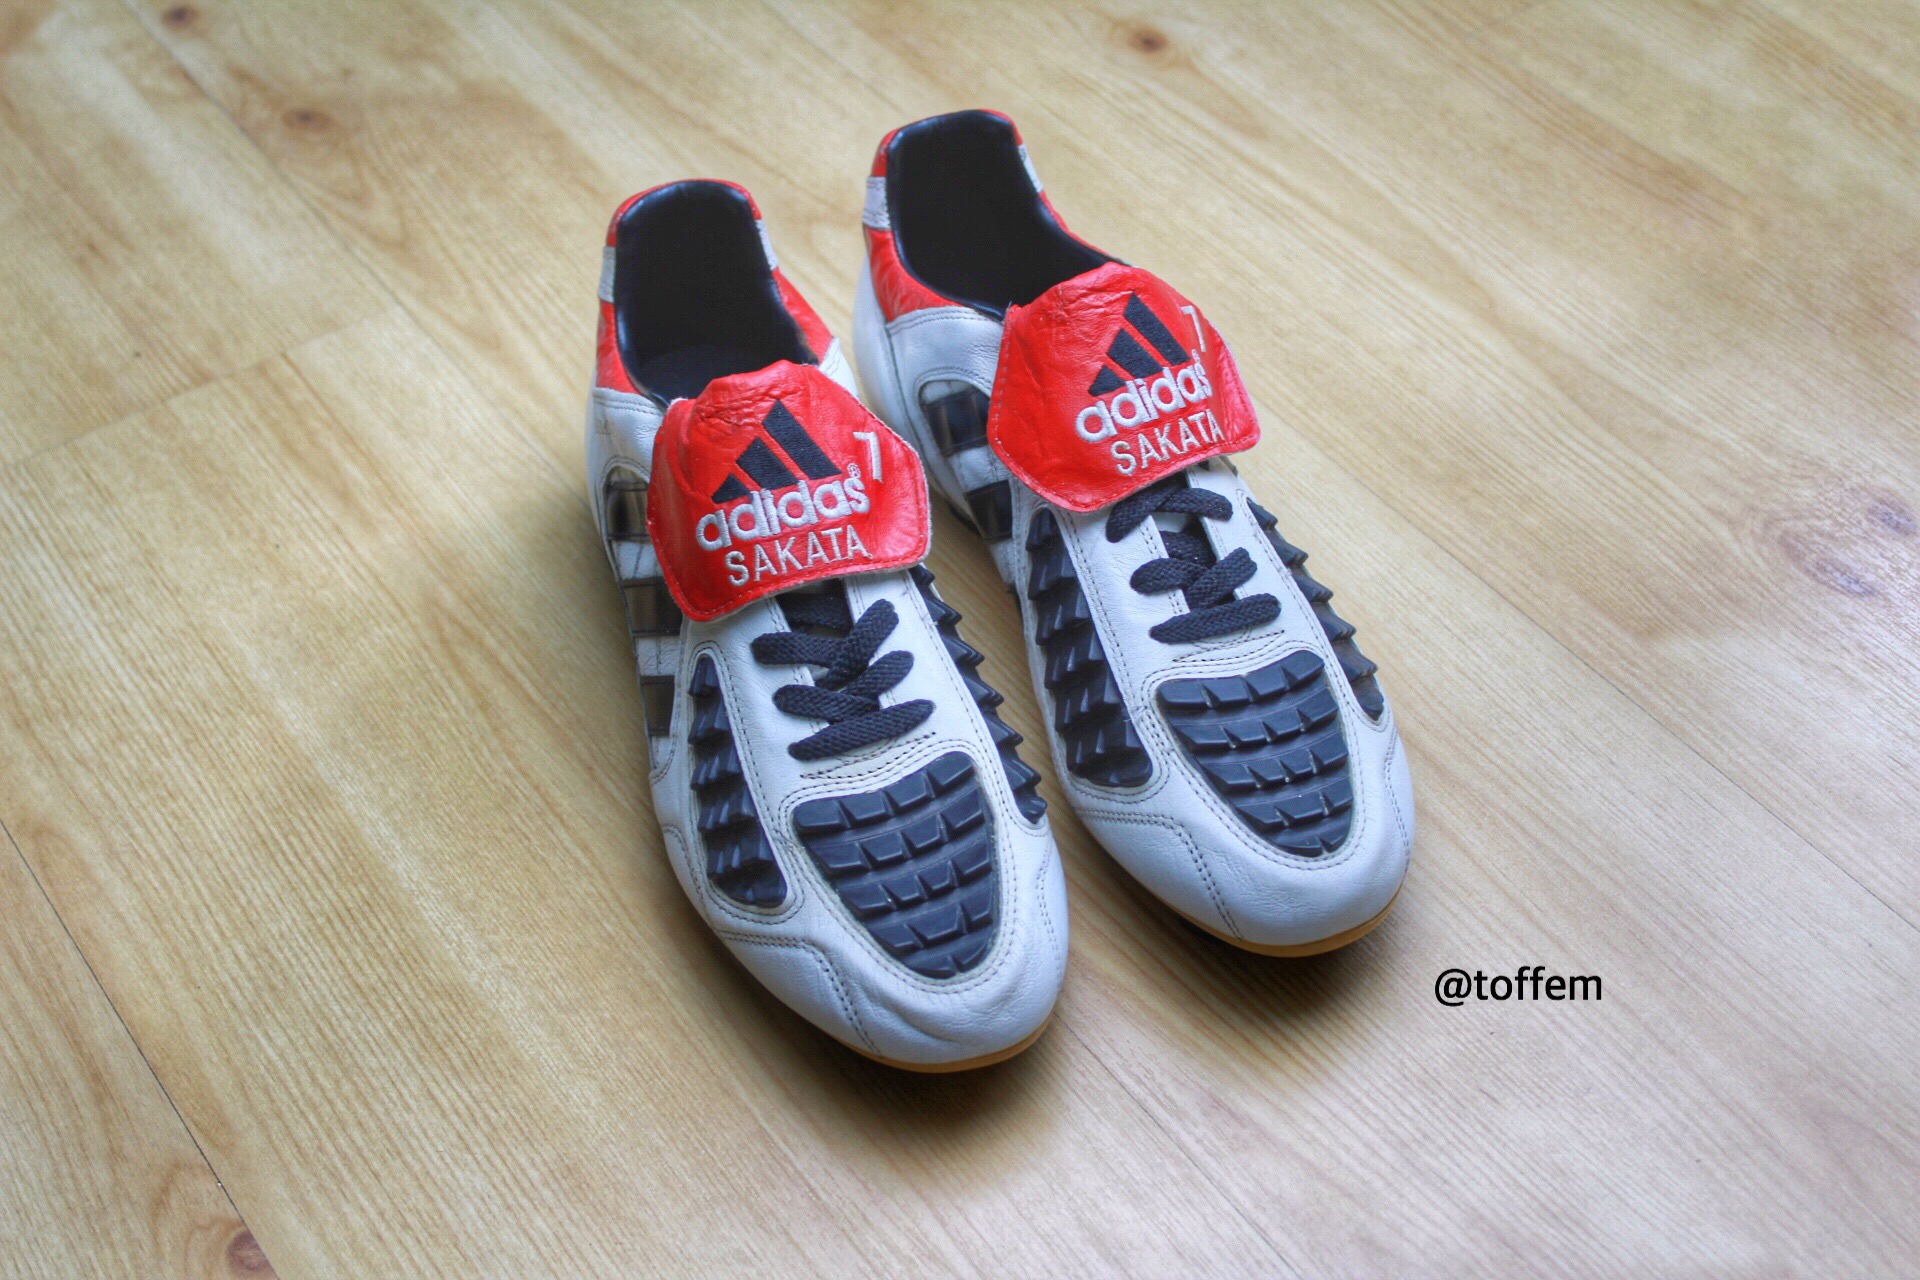 reputable site f0ba1 24814 Adidas Predator Touch Hg Japan version